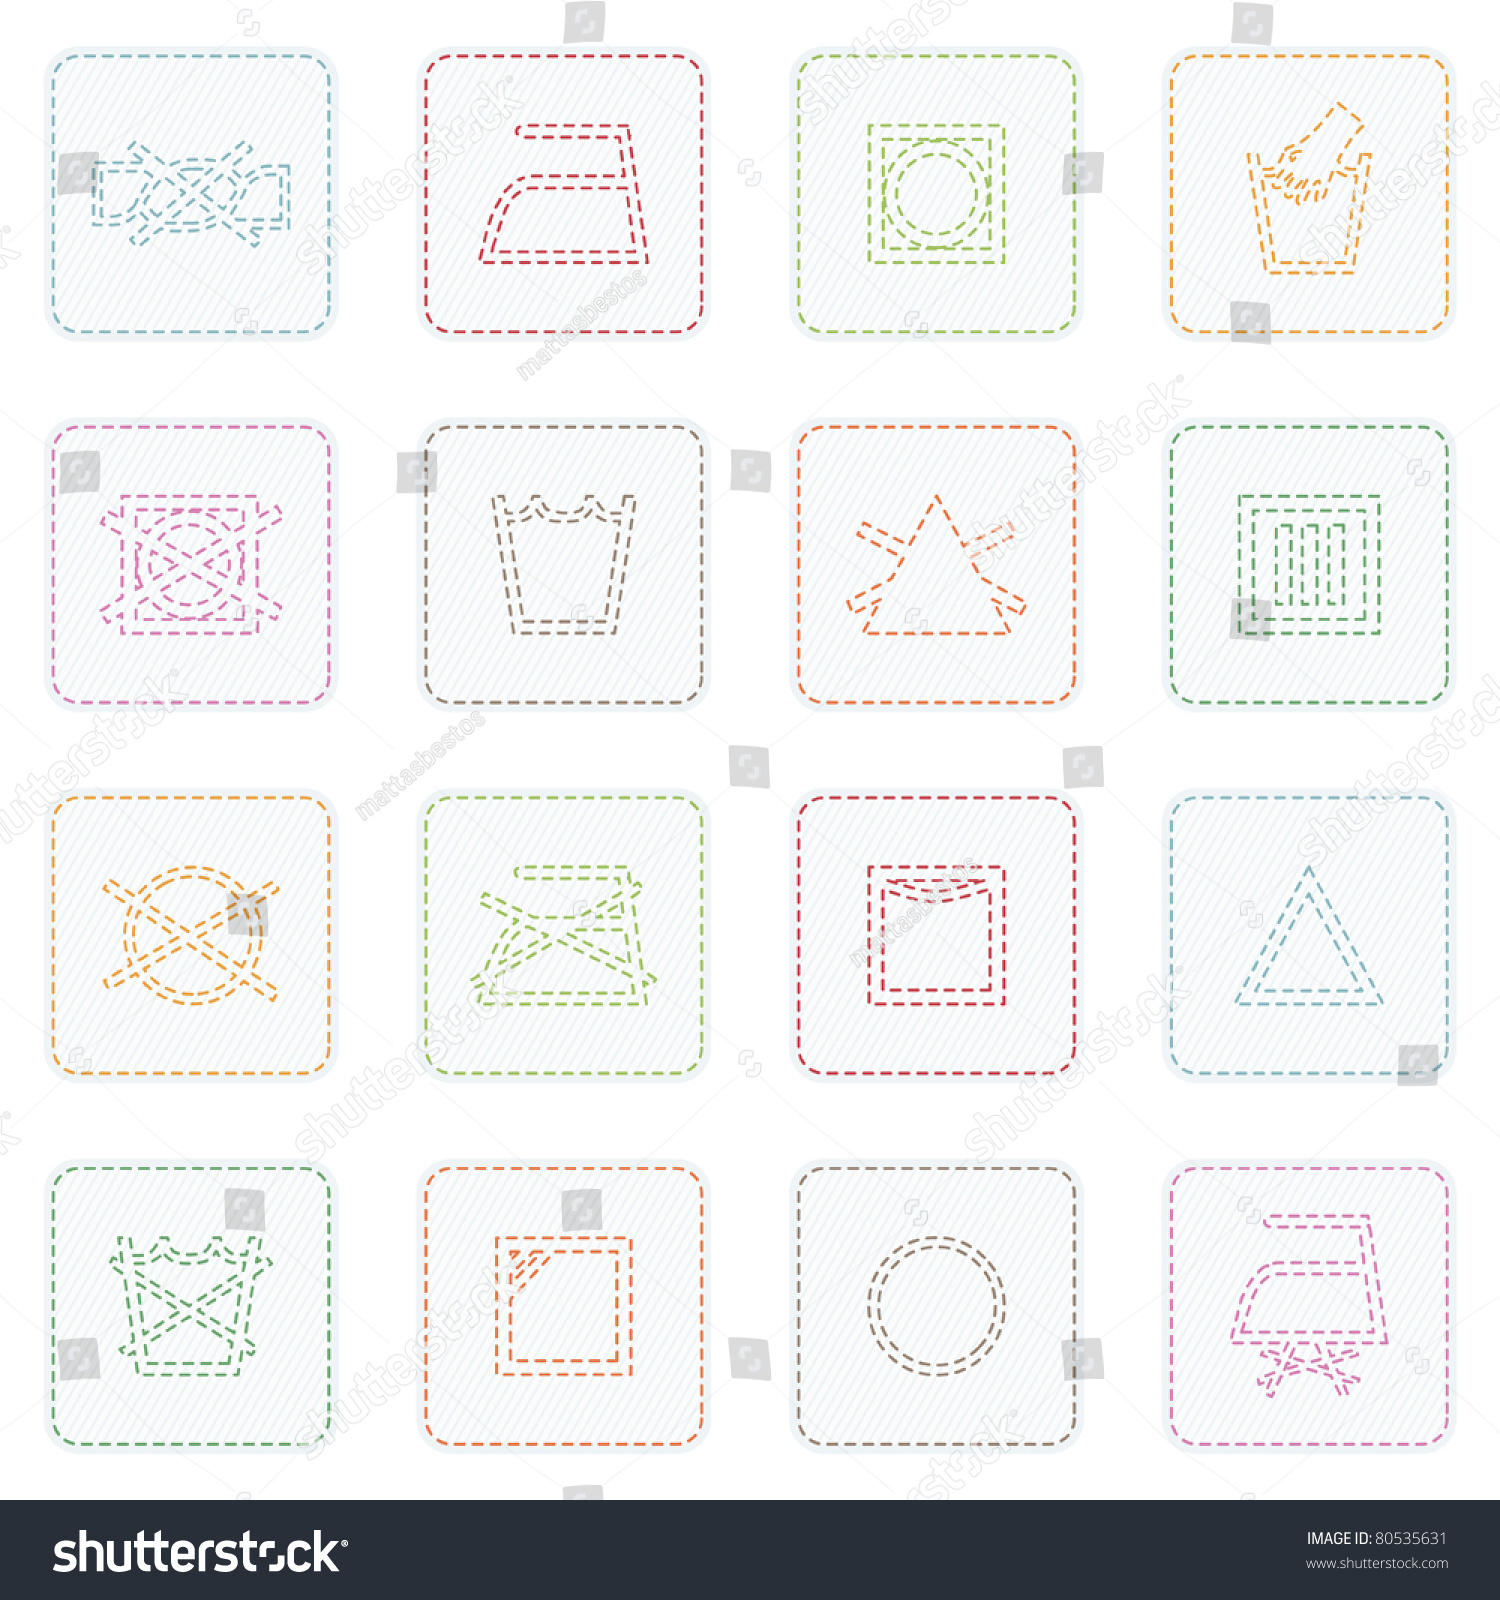 Collection Icons Stitched Fabric Care Symbols Stock Vector Royalty